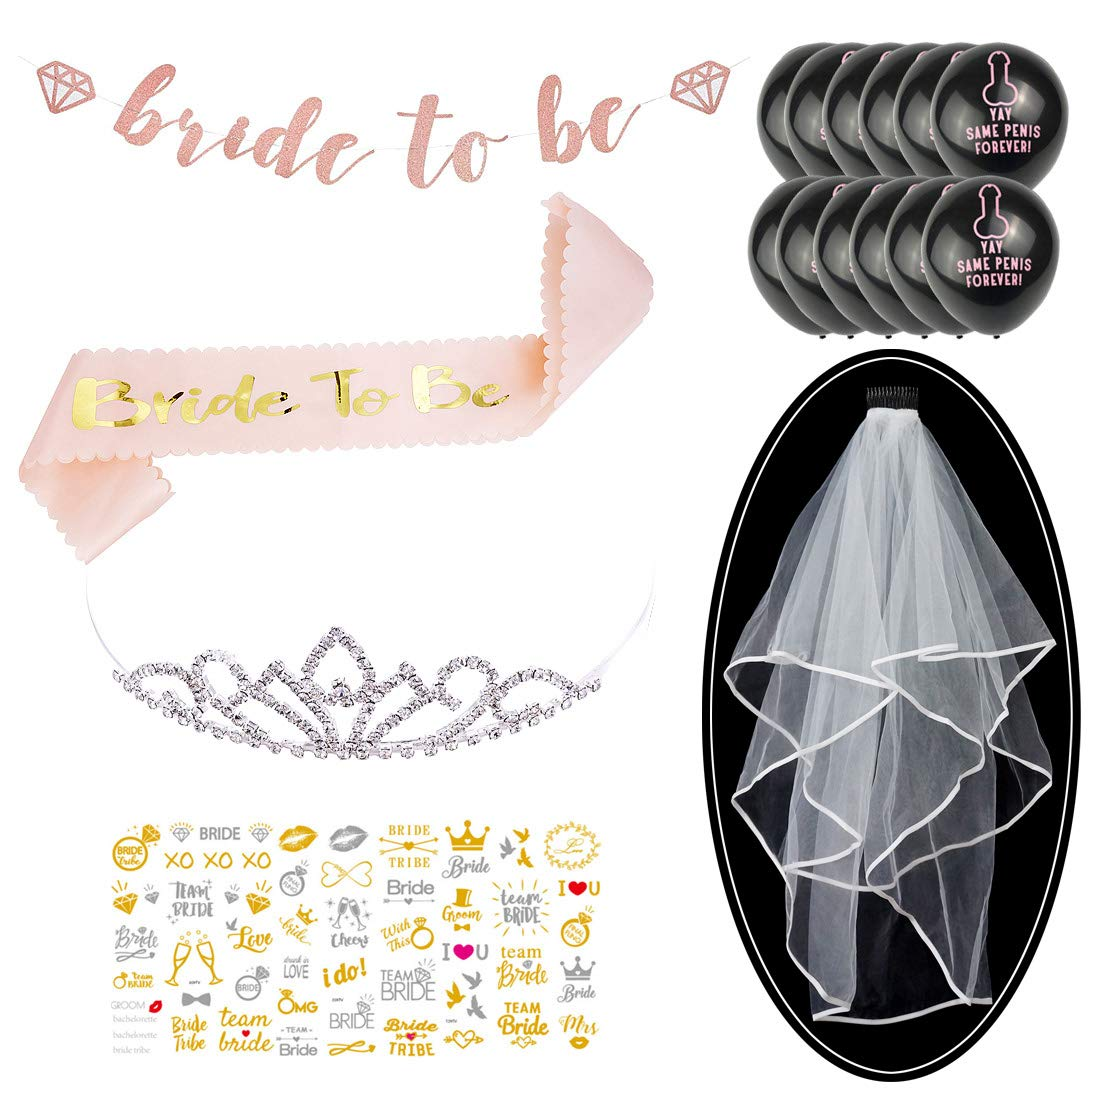 Rose Gold Bachelorette Bride to Be Sash, Bachelorette Veil and Tiara, Tattoos, Balloons, Bride to Be Banner for Bachelorette Party Supplies Bridal Shower Supplies by Partycheers